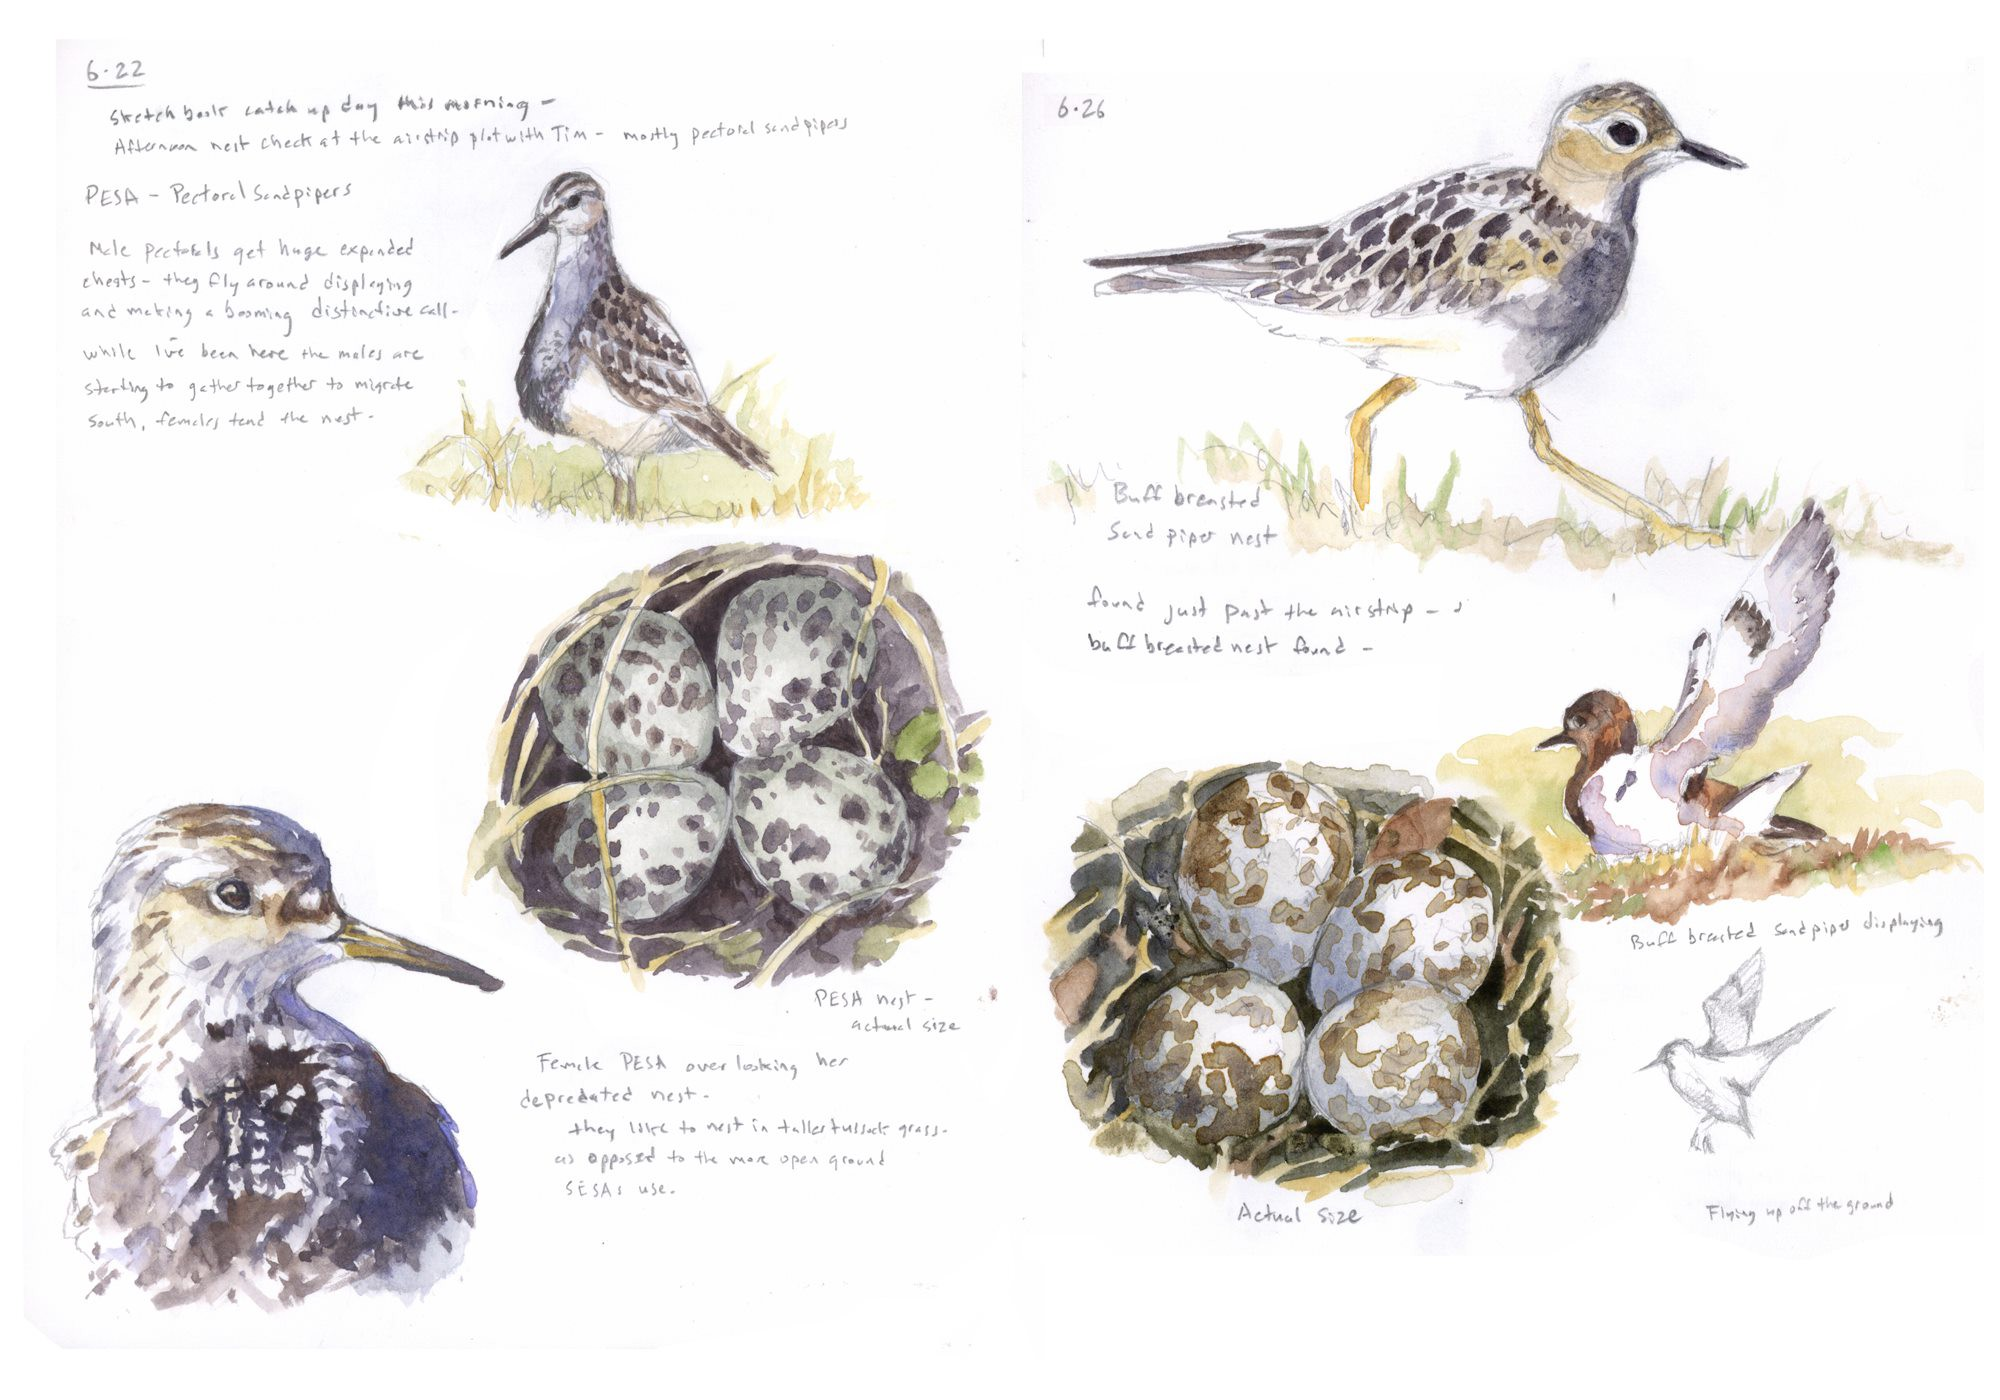 field sketches of birds and nests in a notebook